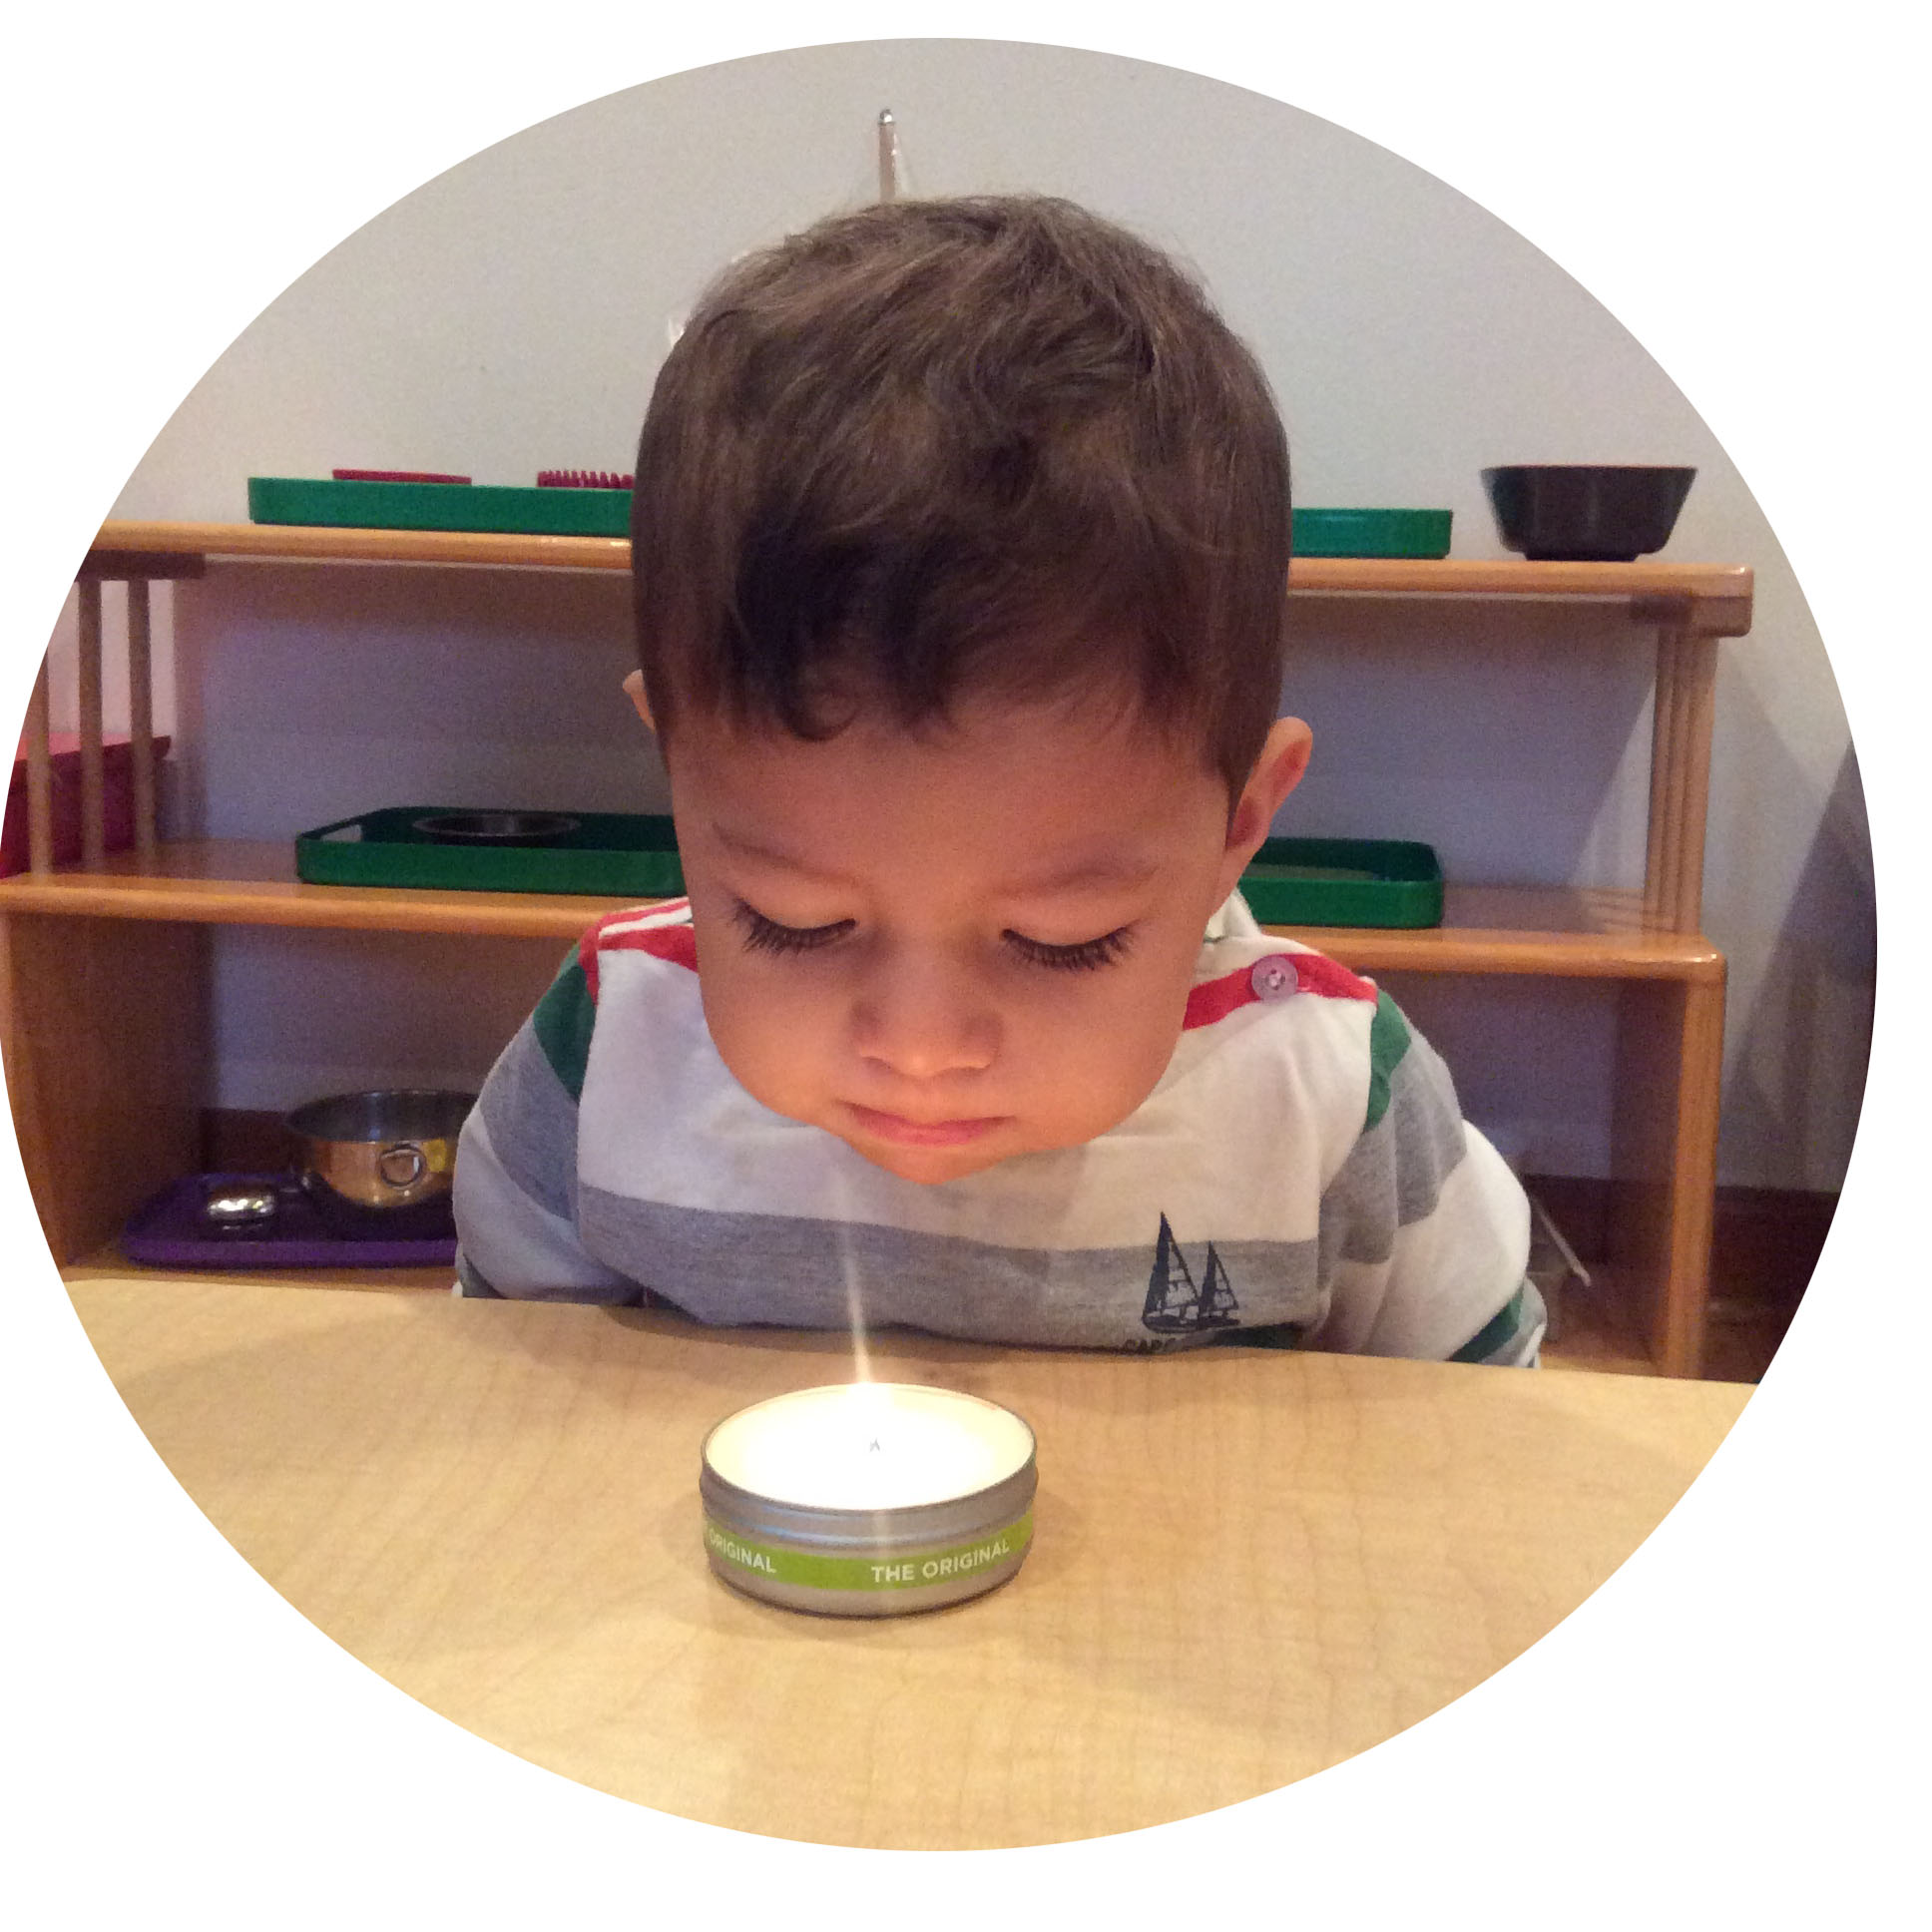 A toddler learns how to use breath to gently blow out the candle.